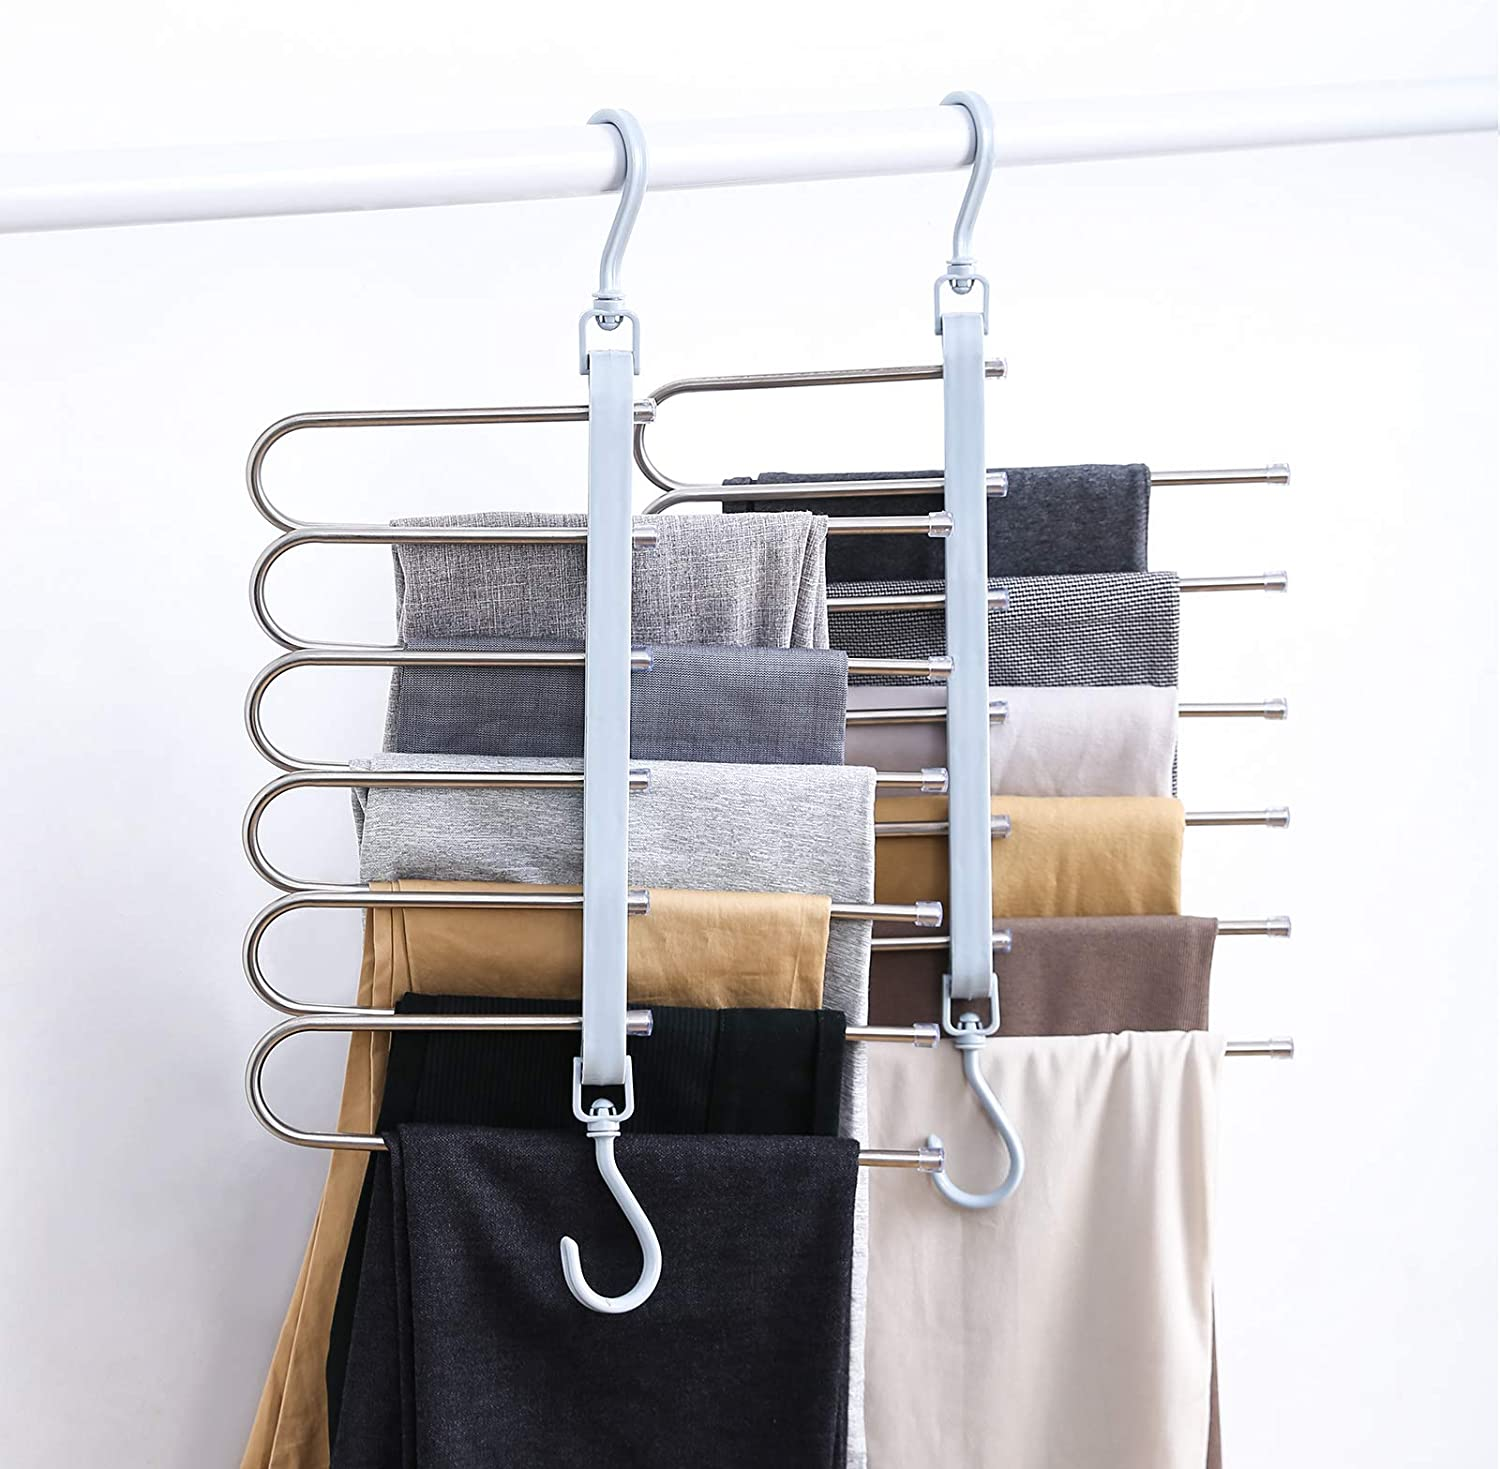 YUELMAN Raleigh Mall 6-in-1 Pants Hangers Special price for a limited time Space Slip Saving Clothes Non Organ